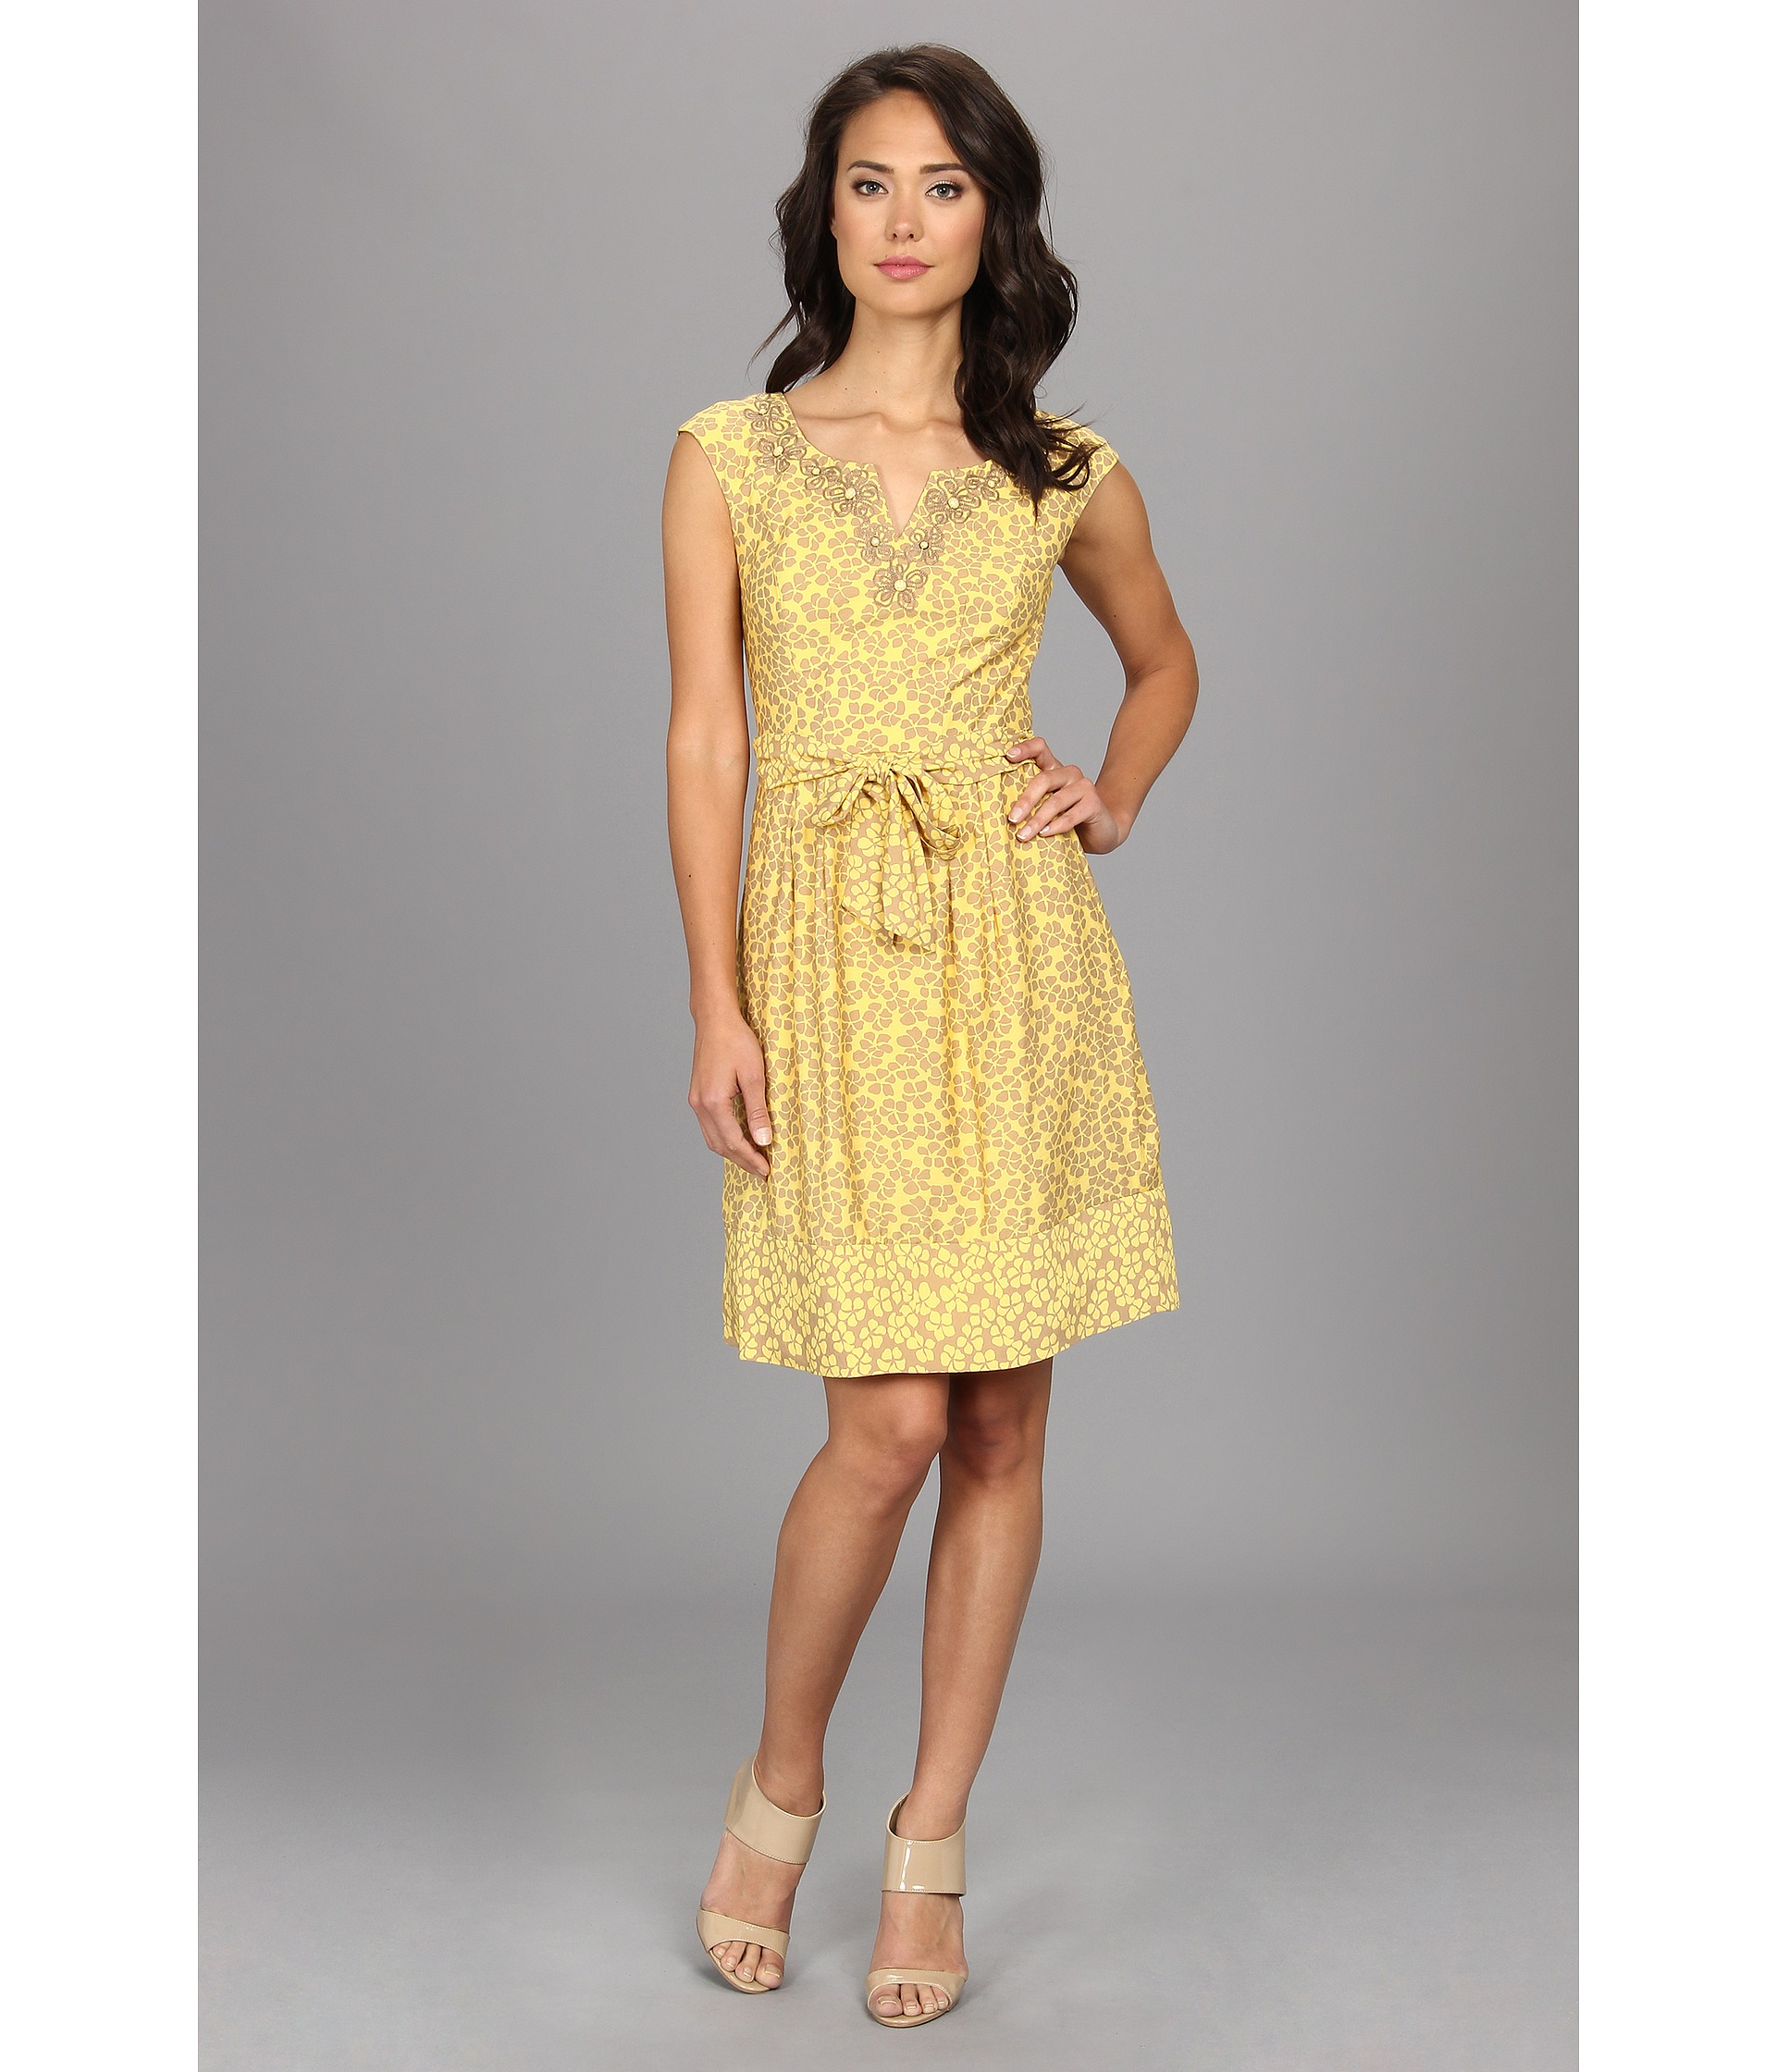 Adrianna papell ditsy floral embellished neck dress in